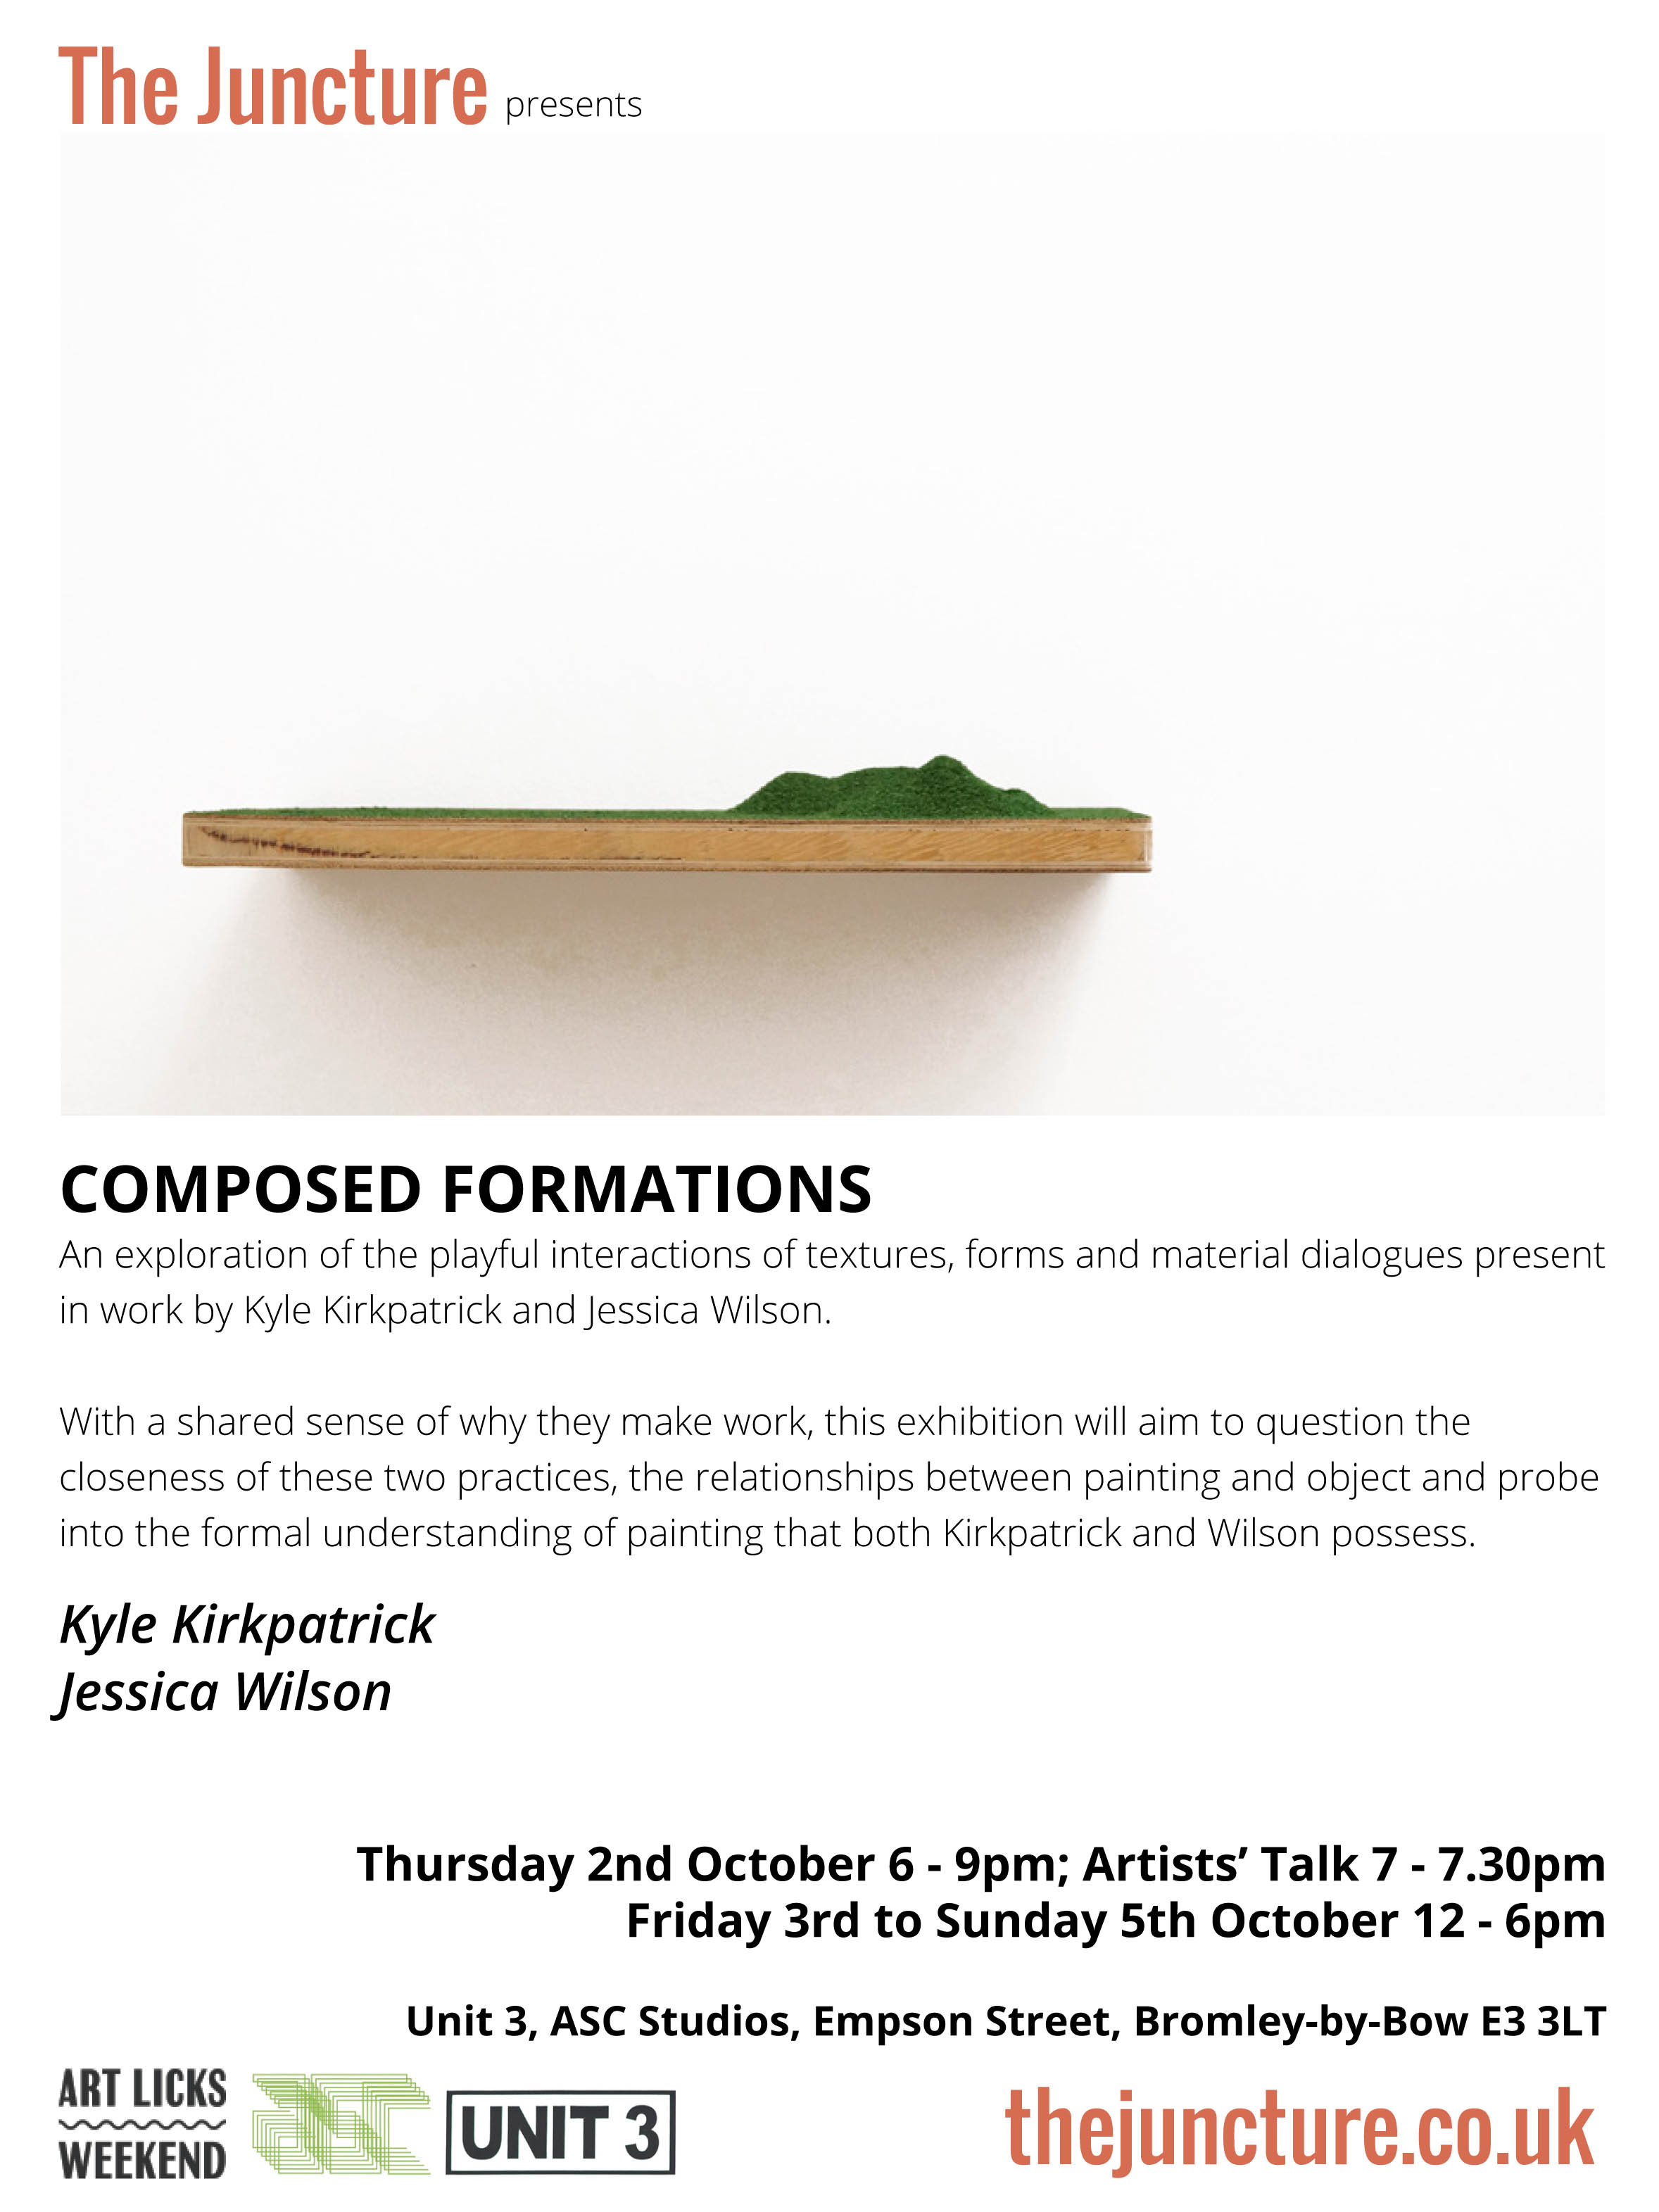 composed formations flyer pdf